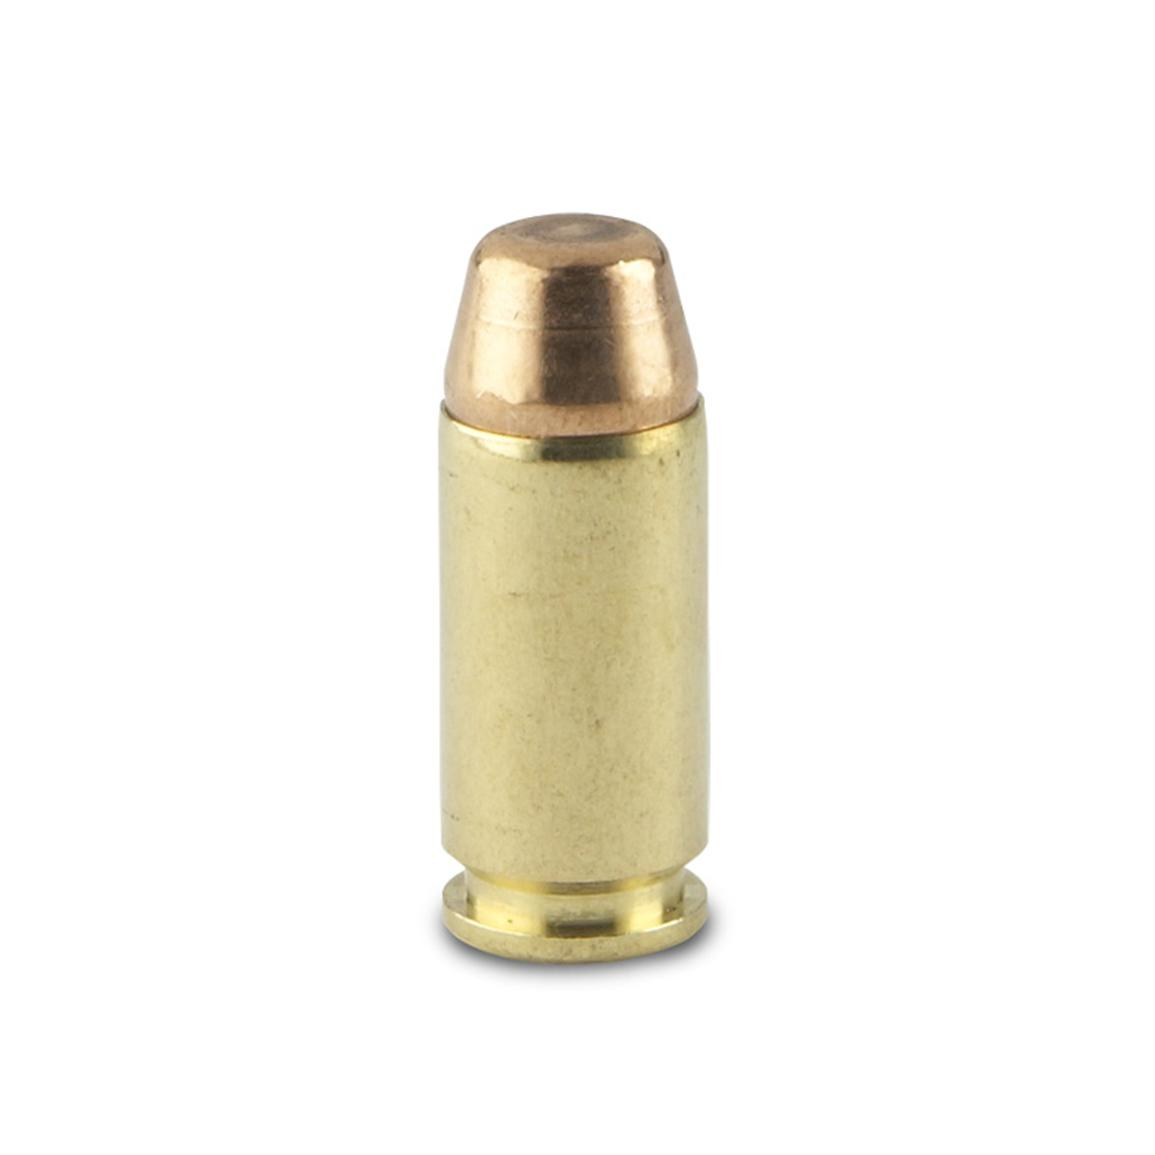 Great for target practice and plinking